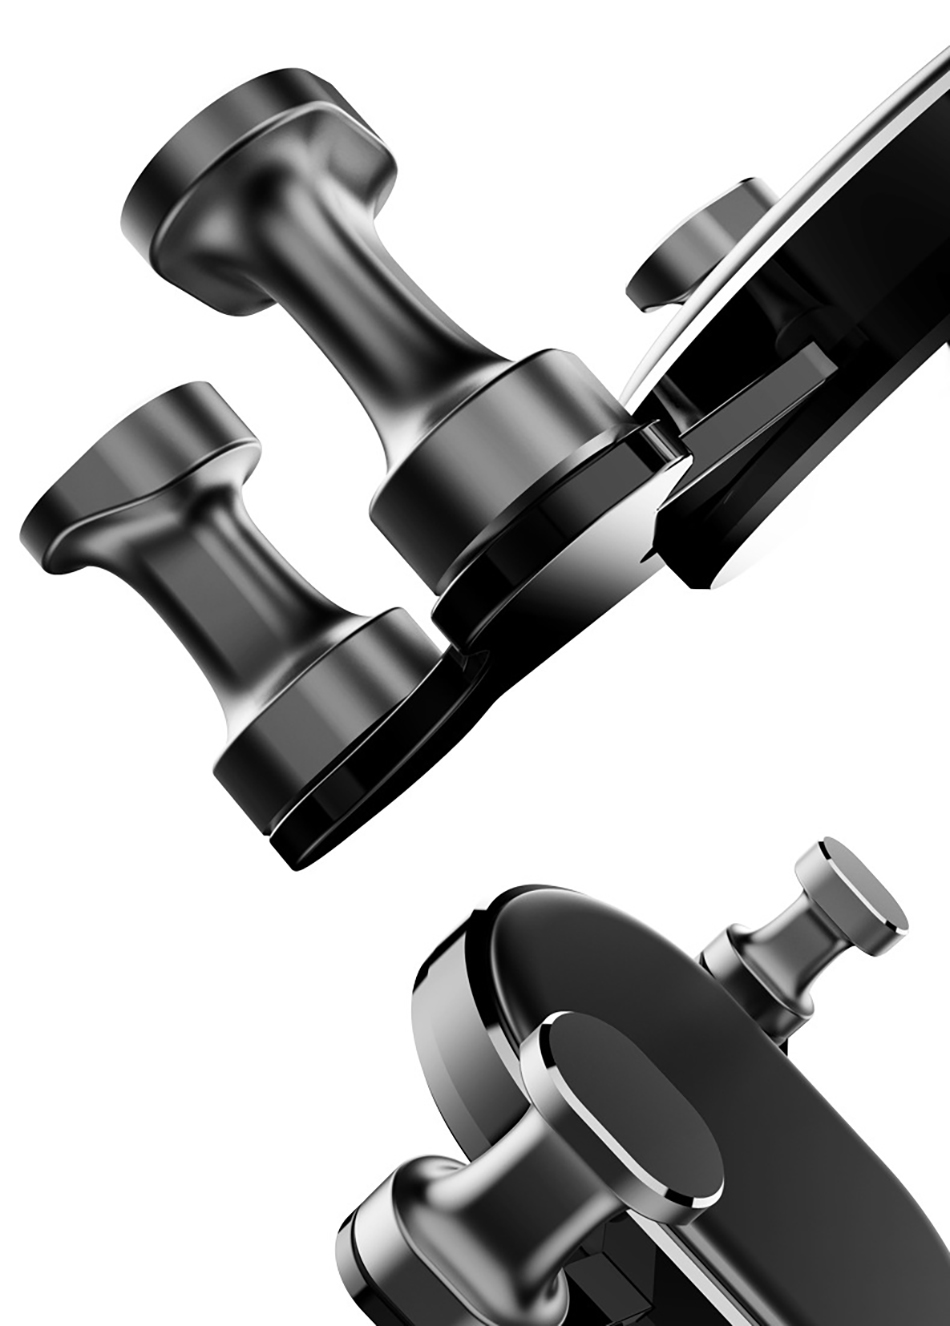 !ACCEZZ Universal Gravity Car Phone Holder In Car Air Vent Mount Stand For iPhone 6 7 8 X XS Samsung Xiaomi Mobile Phone Bracket (13)